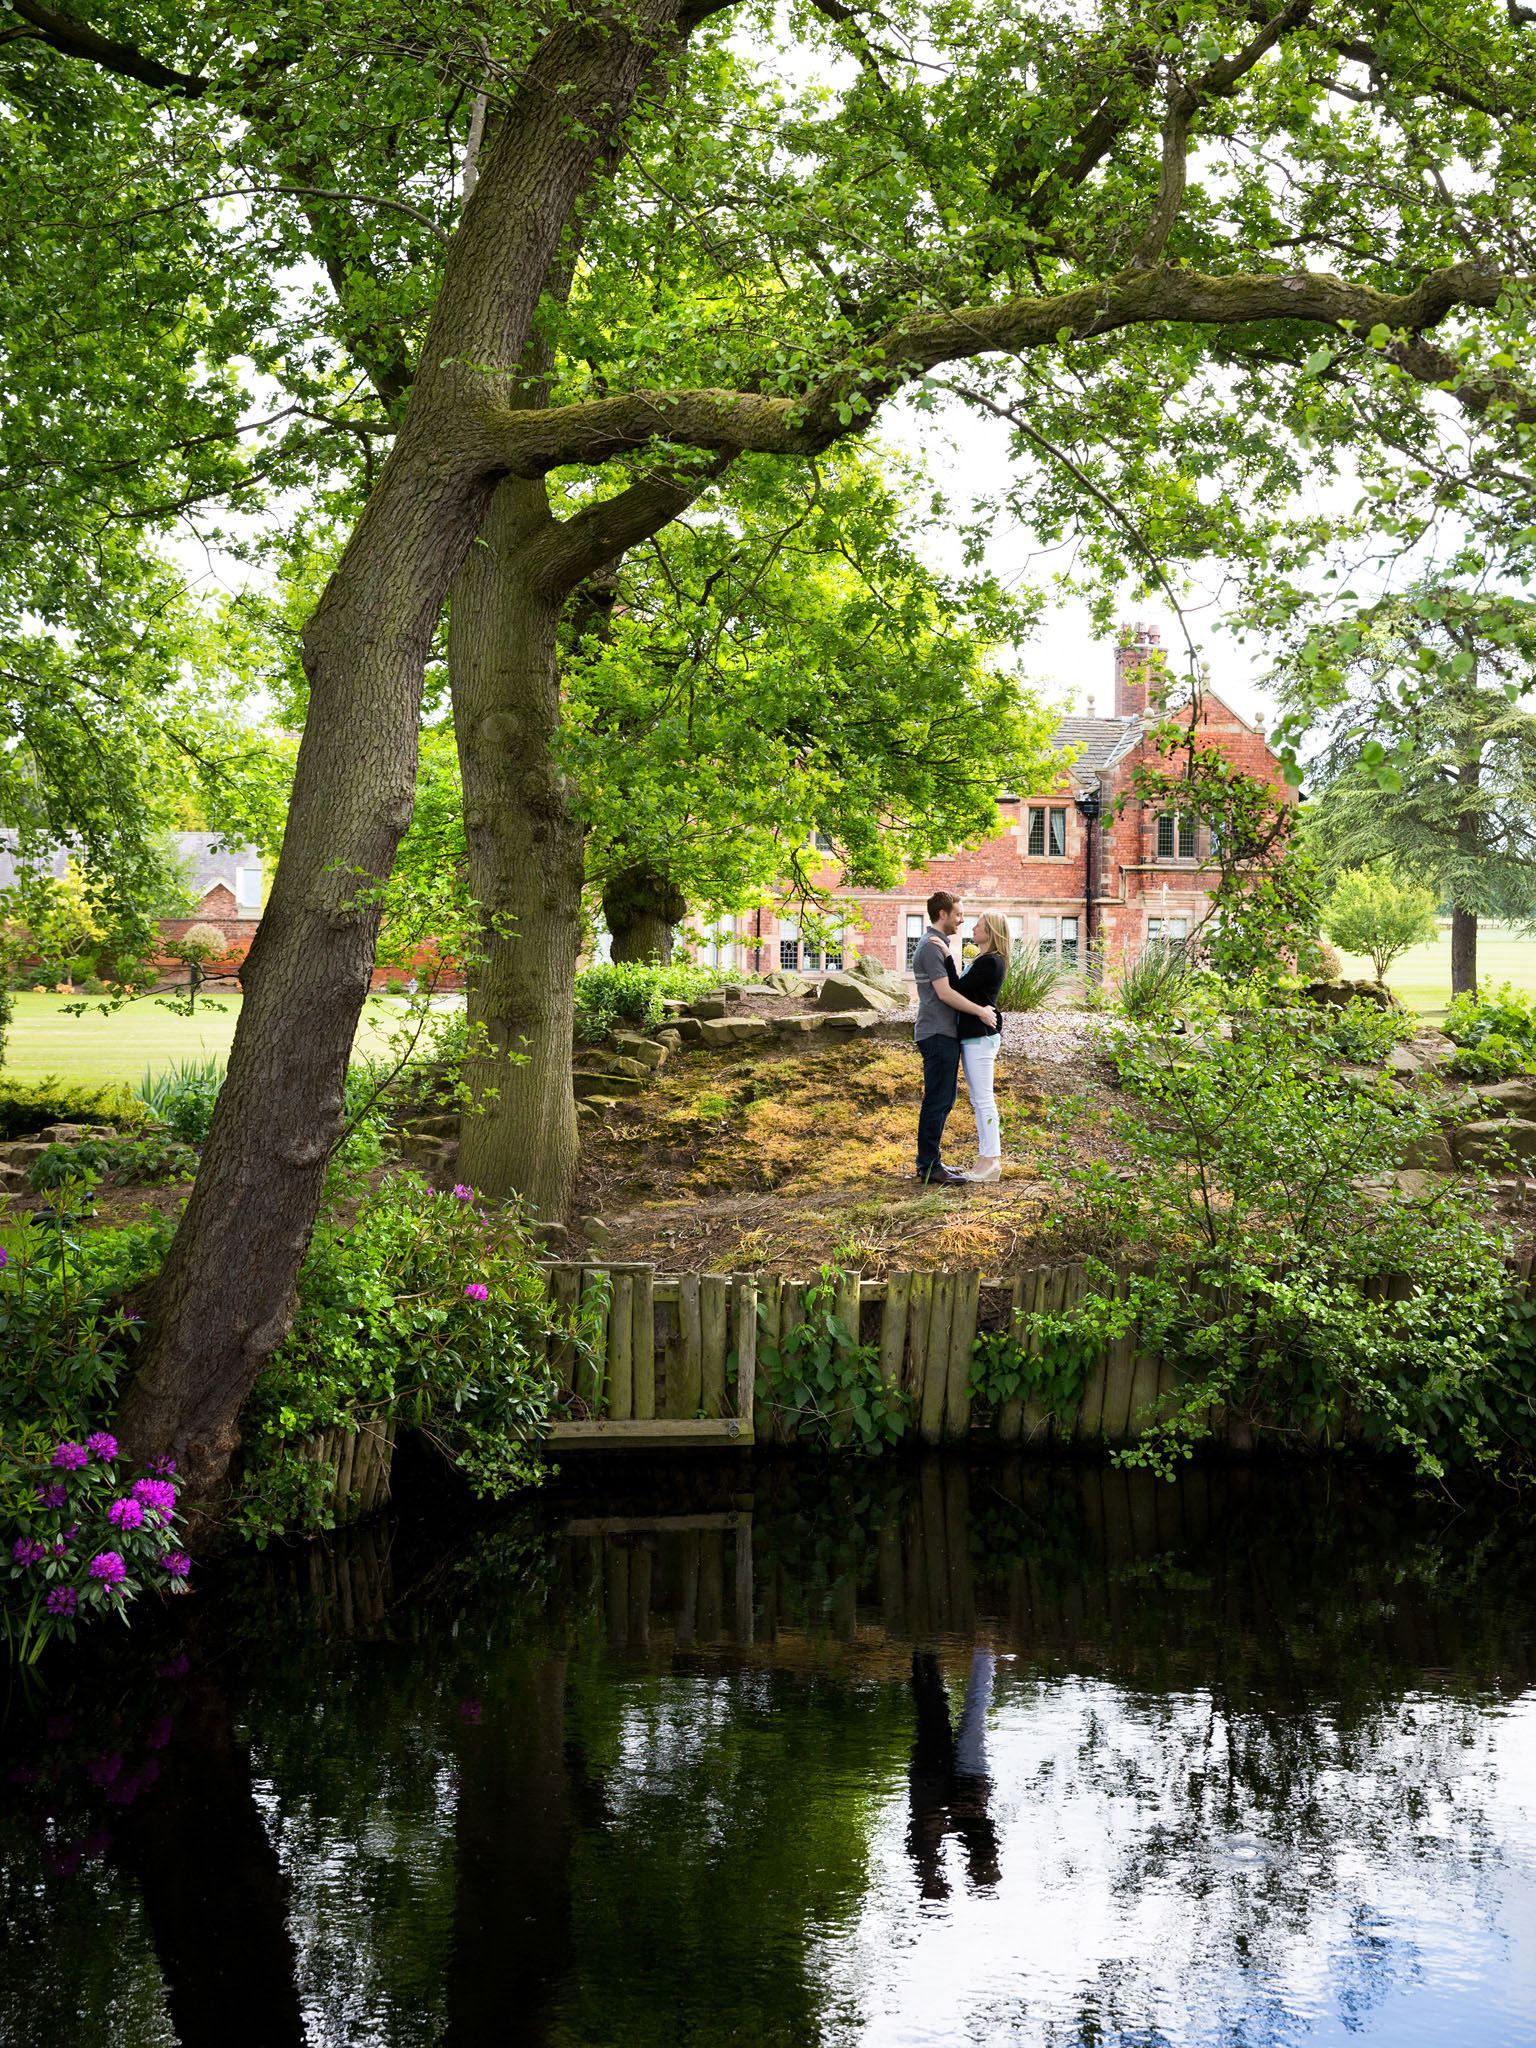 Prewedding shoot at Colshaw Hall, Cheshire by Cheshire wedding photographer Andrew Collier Photography